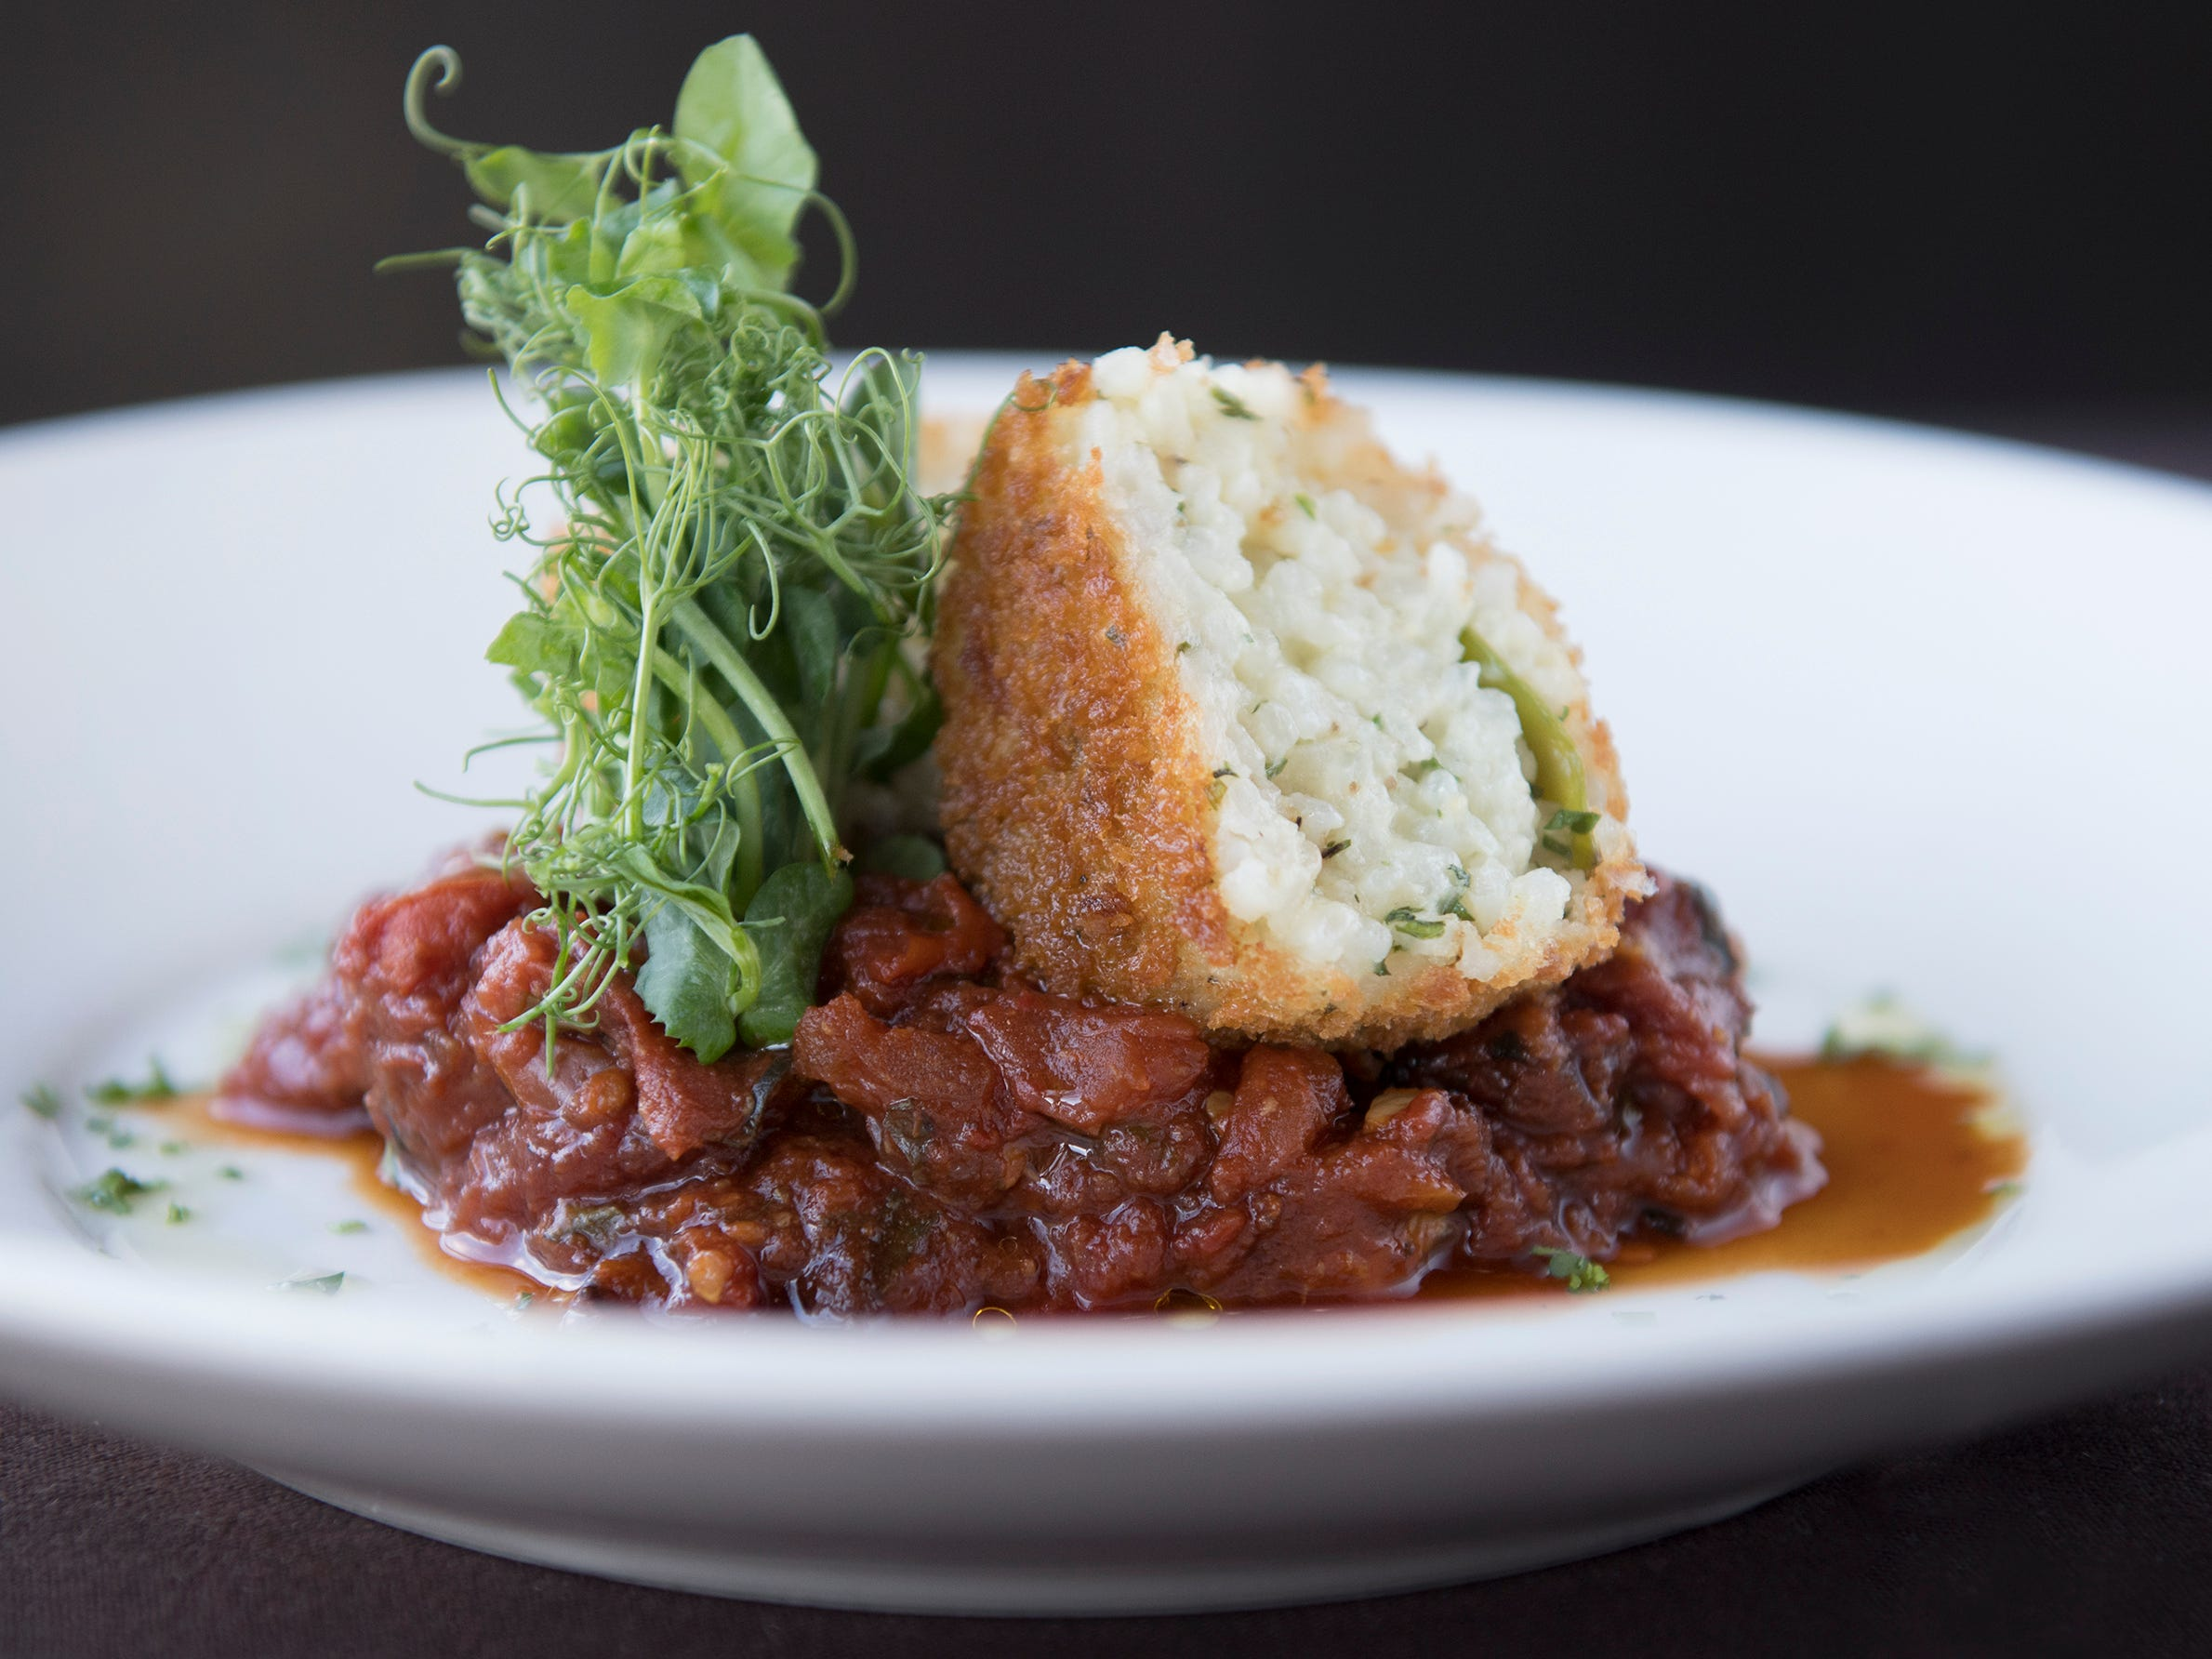 Sweet pea and marscapone cheese arancini with smoked tomato sauce is a first course option on the SJ Hot Chefs' Spring Restaurant Week menu of Anthony's Creative Italian Cuisine in Haddon Heights.